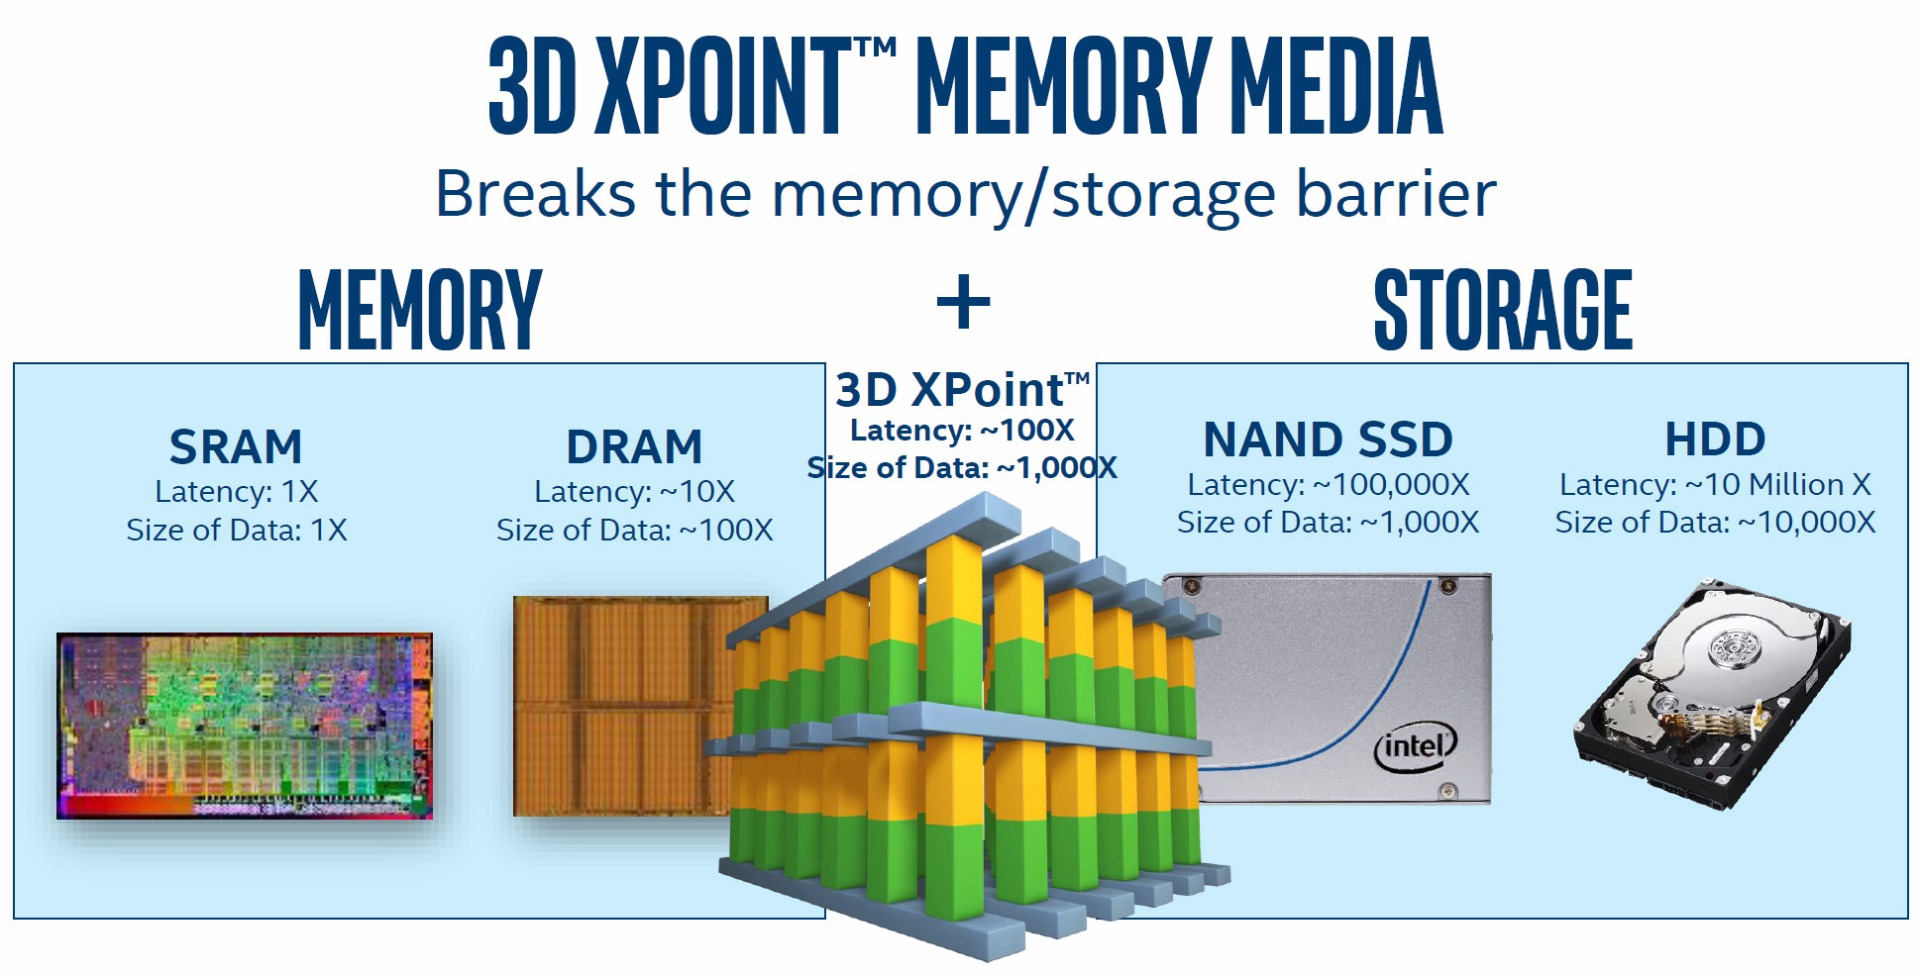 Intel Optane SSD DC P4800X With 3D Xpoint Memory Debuts Ultra-Low Latency Storage, New Memory Tier